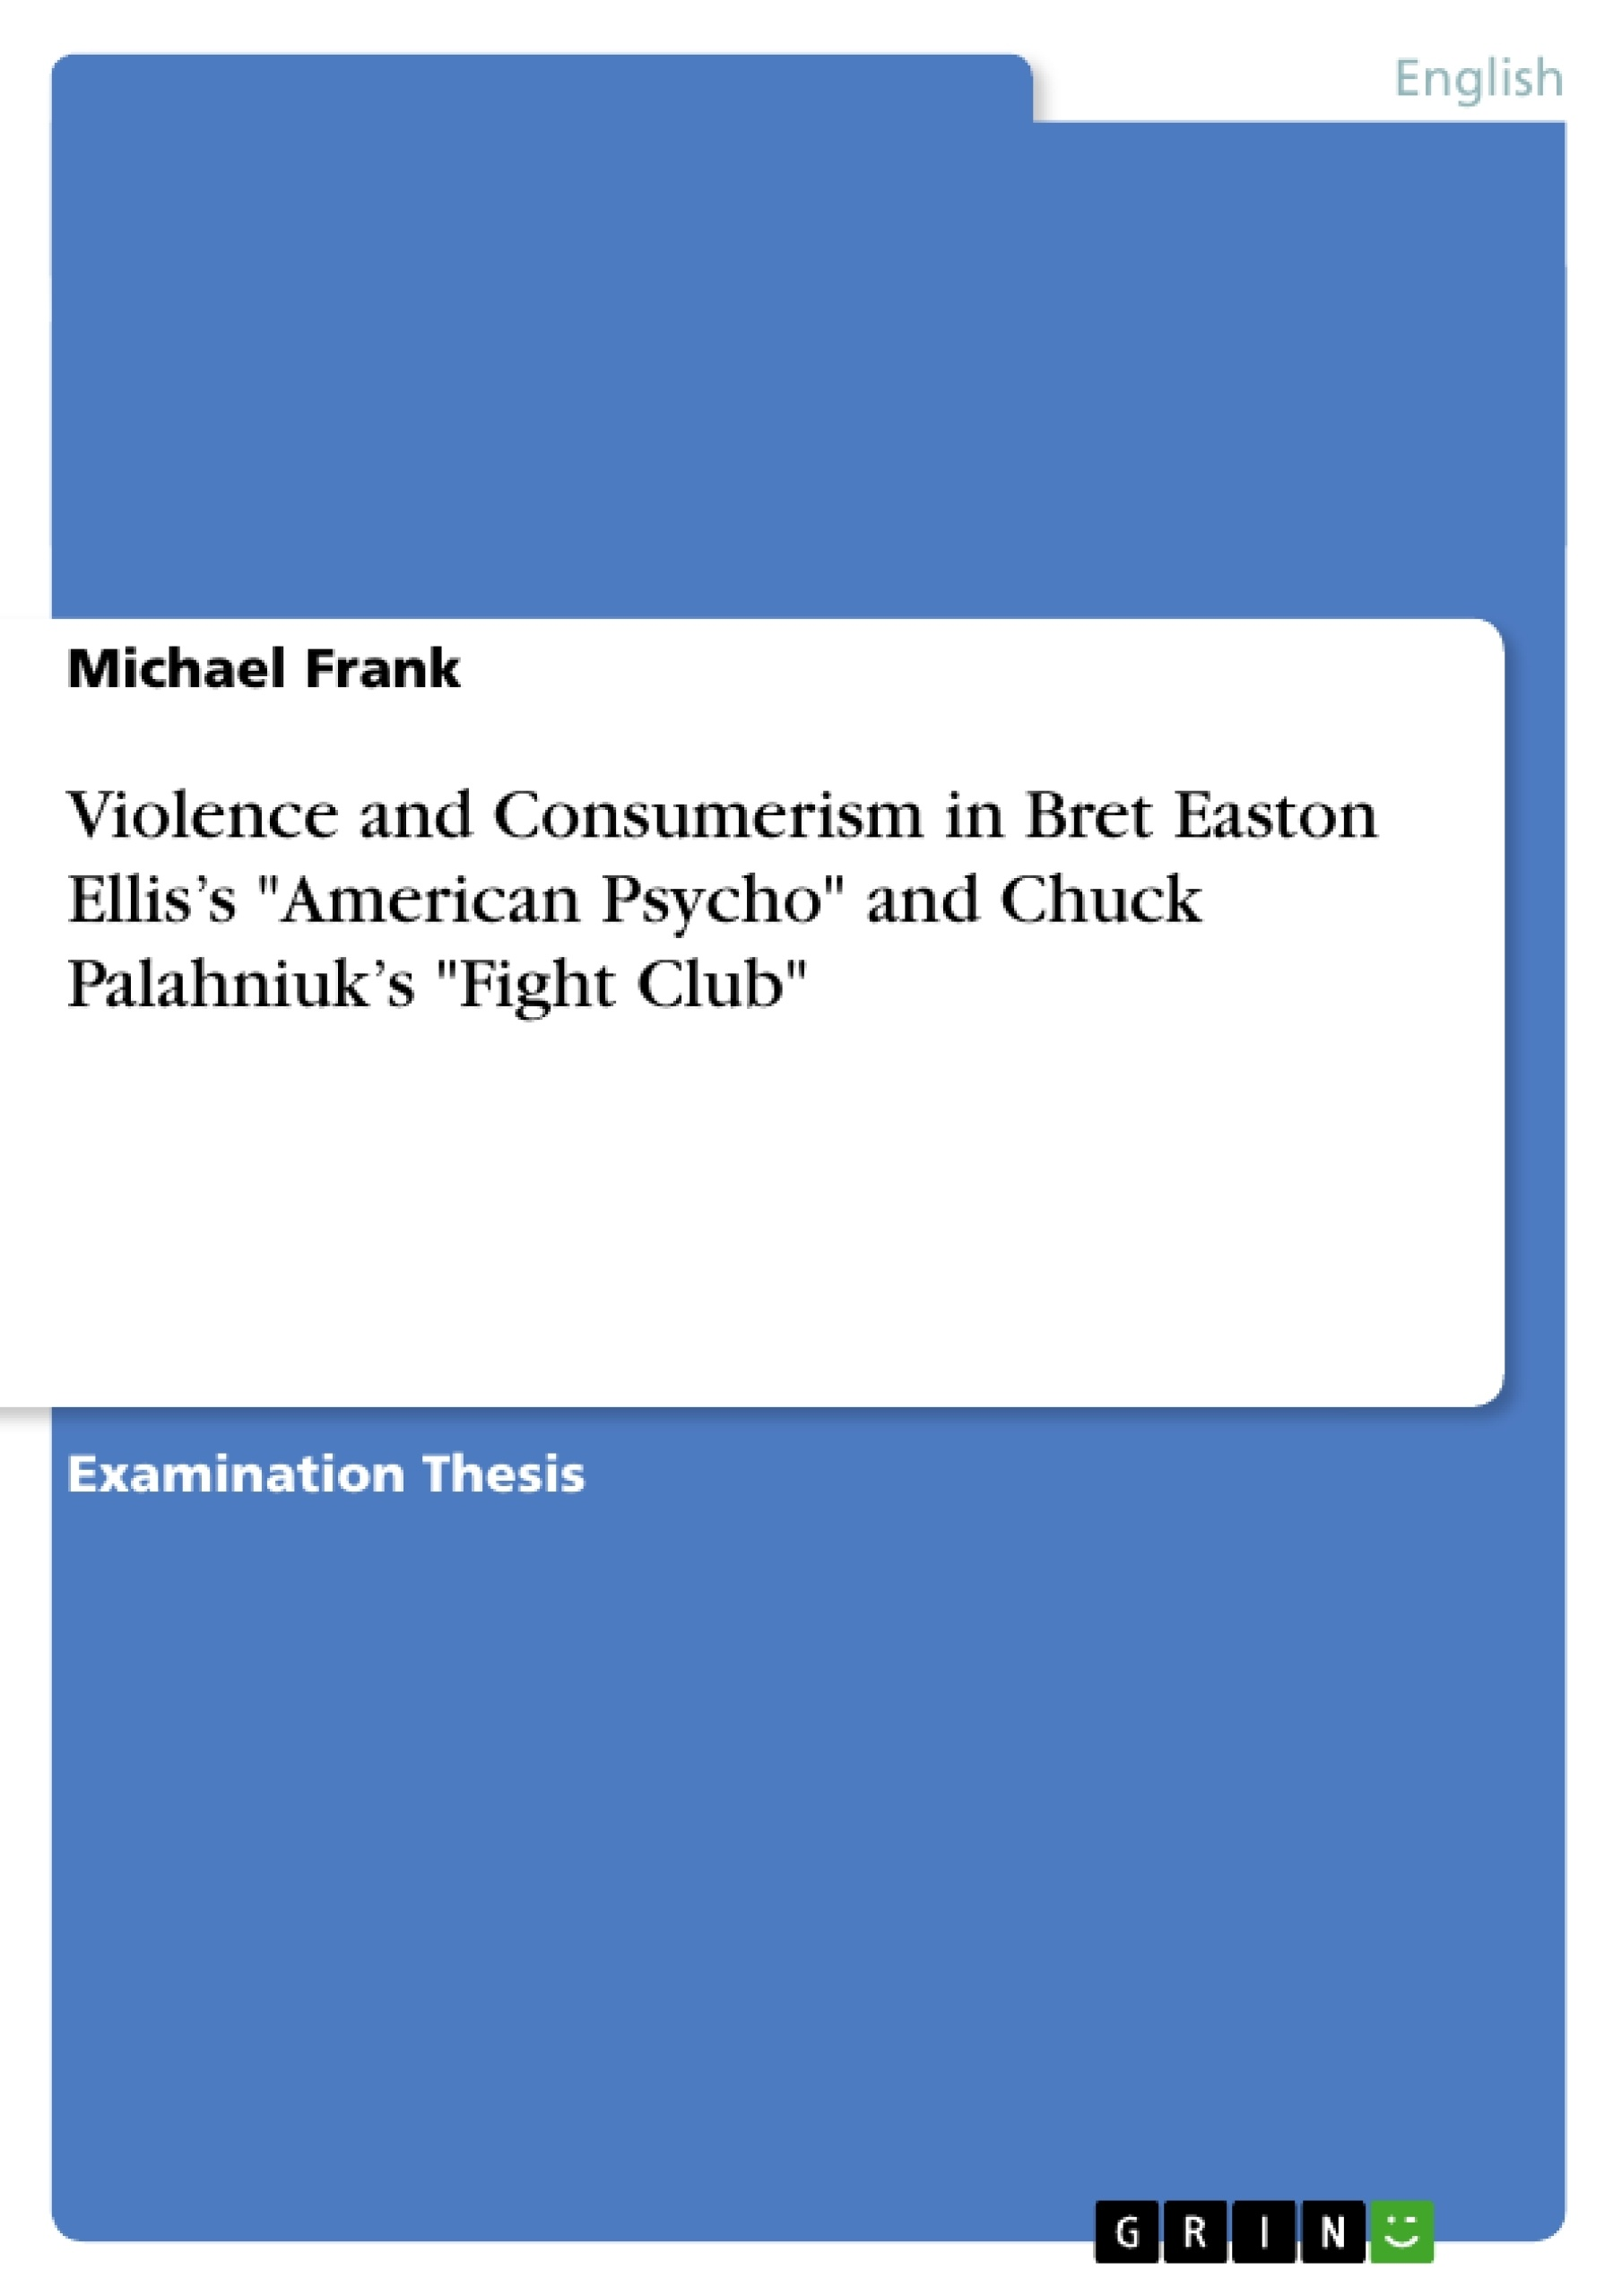 violence and consumerism in bret easton ellis s american psycho violence and consumerism in bret easton ellis s american psycho publish your master s thesis bachelor s thesis essay or term paper